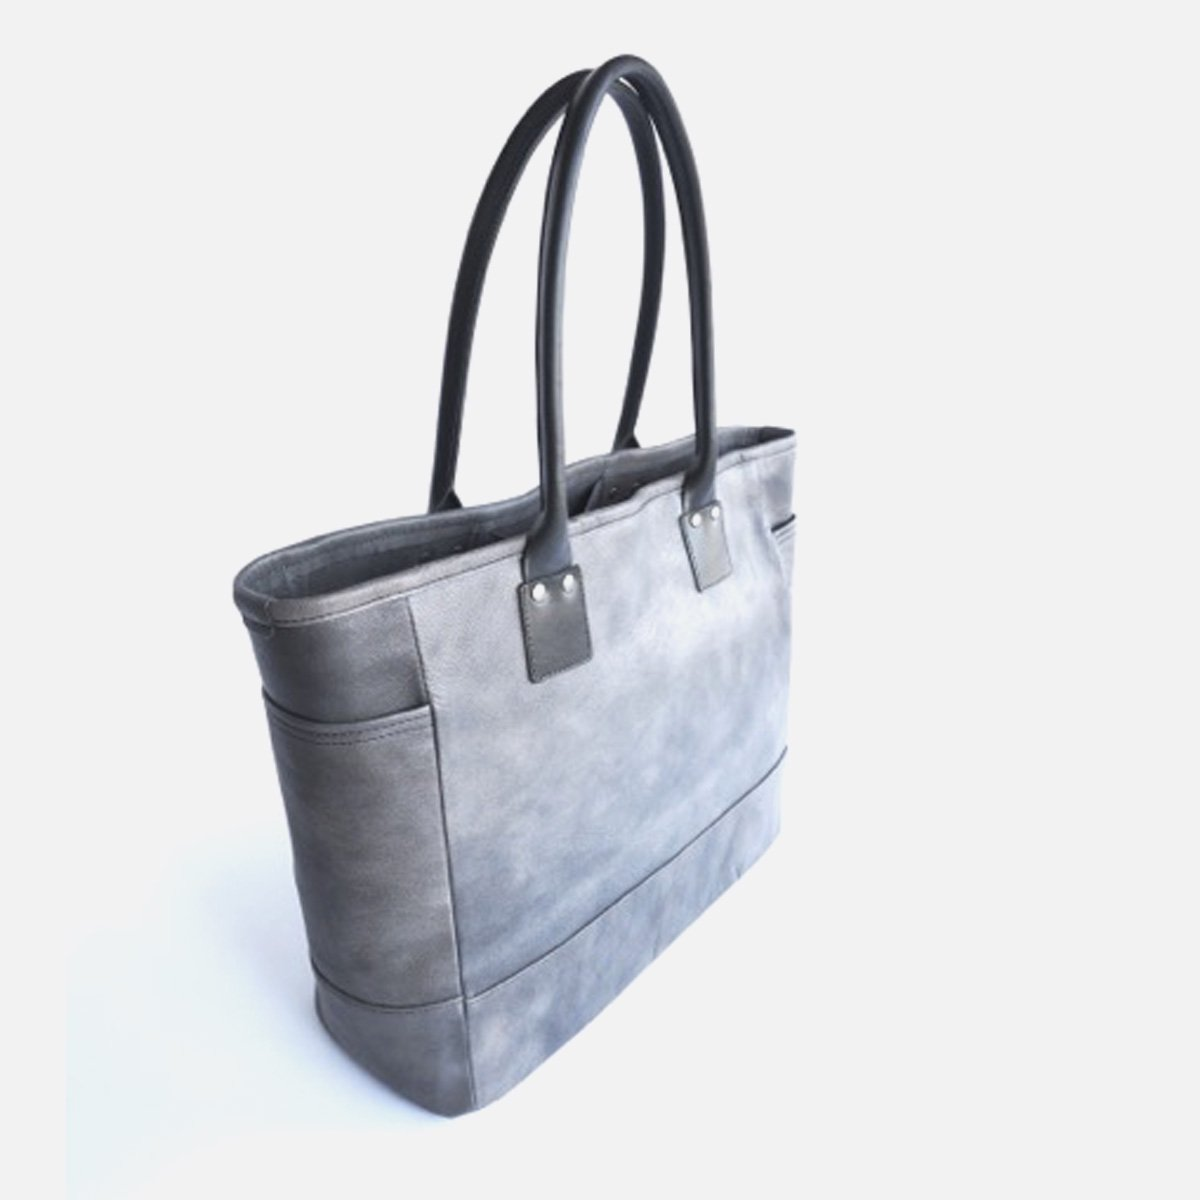 LEATHER&SILVER MOTO BAG19 GOAT LEATHER TOTE BAG (CHARCOAL)3